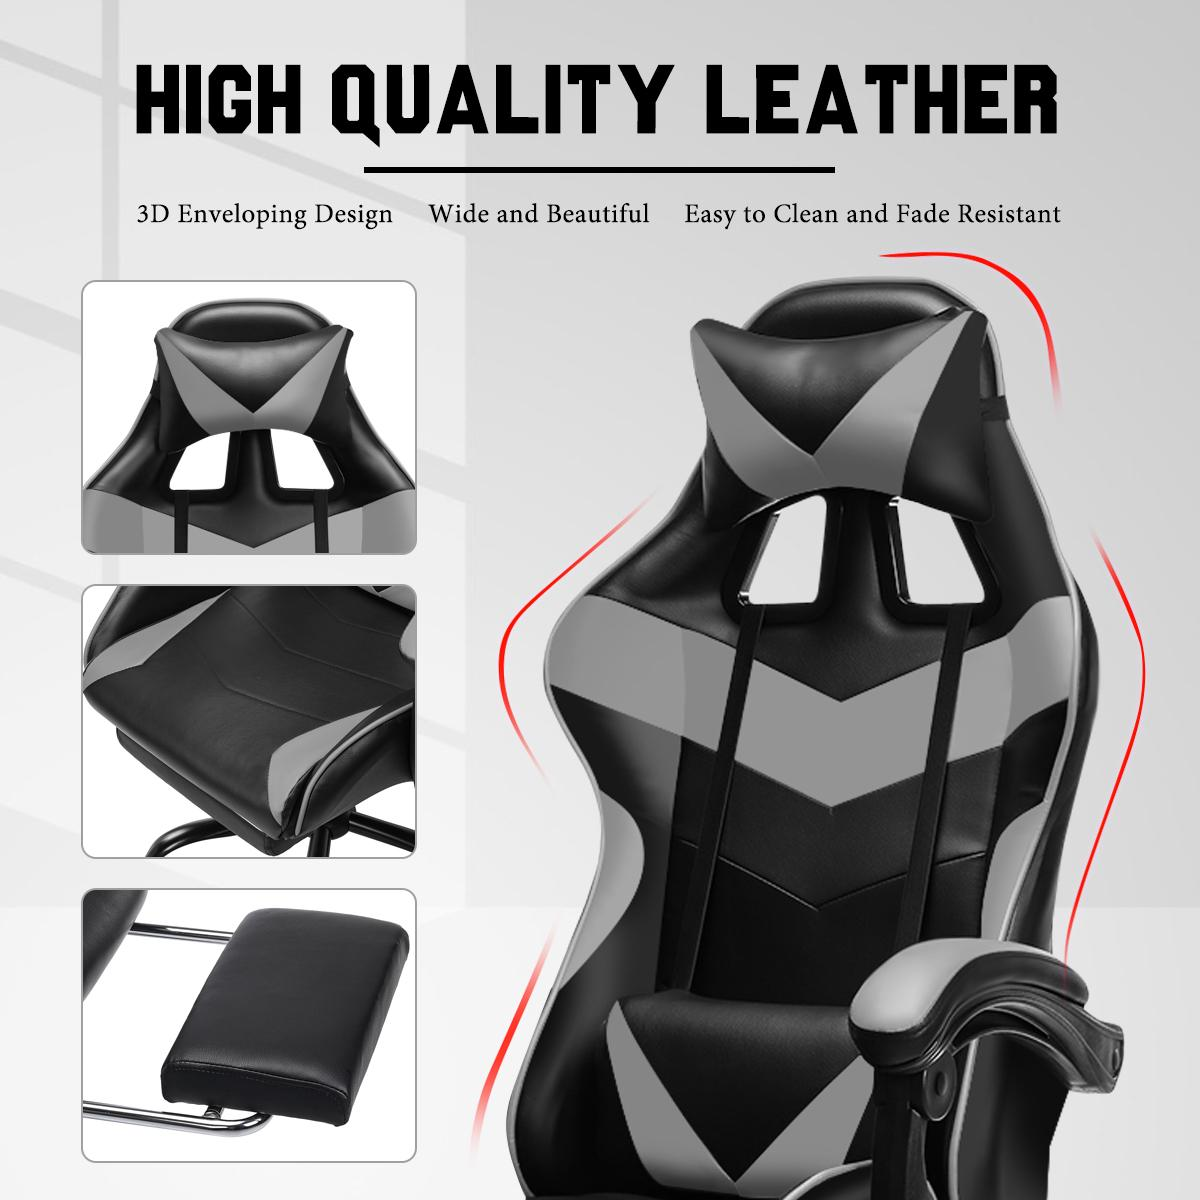 H7973ef2310ec4f6d97c35cae6673940ar - Office Chair Gaming Computer Chair Racing Reclining High Back Computer Game Office Chair Ergonomic Desk Chairs Chaise Gaming